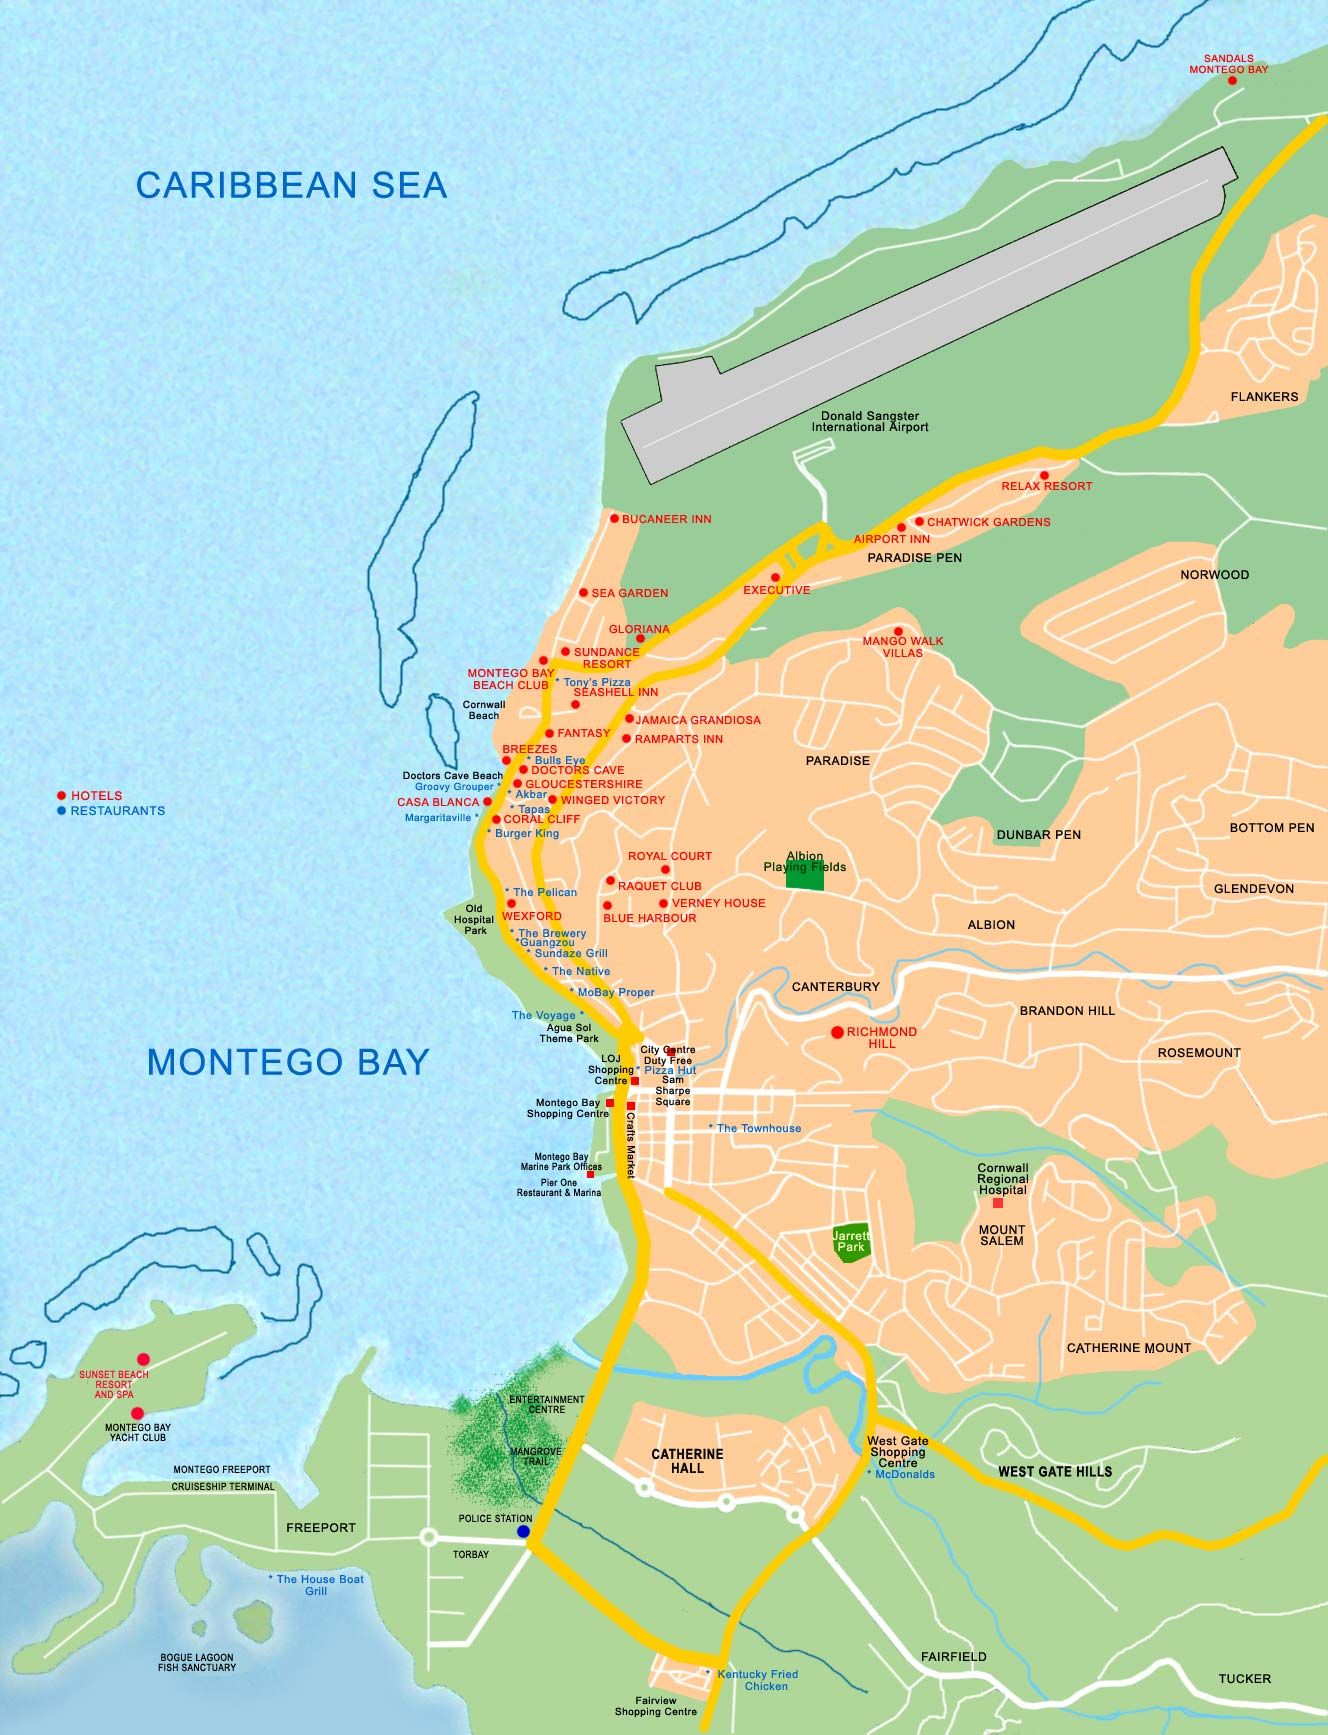 Tourist map of Montego Bay montego bay jamaica • mappery